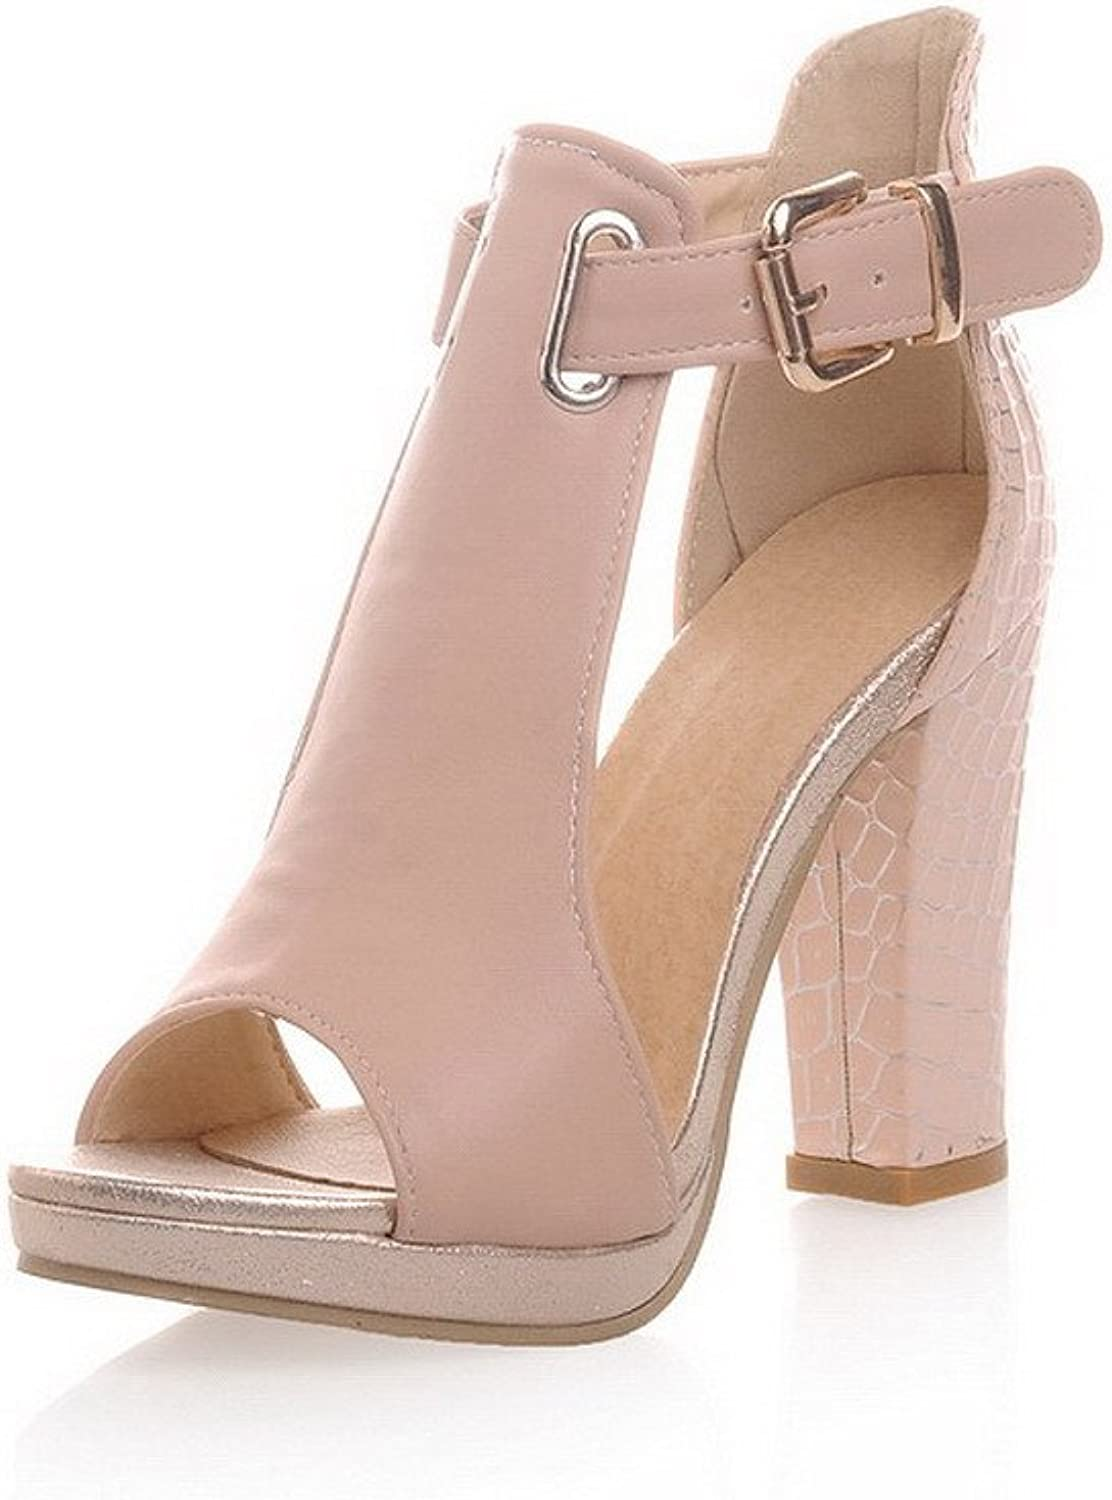 WeenFashion Women's Buckle High Heels Pu Solid Open Toe Sandals